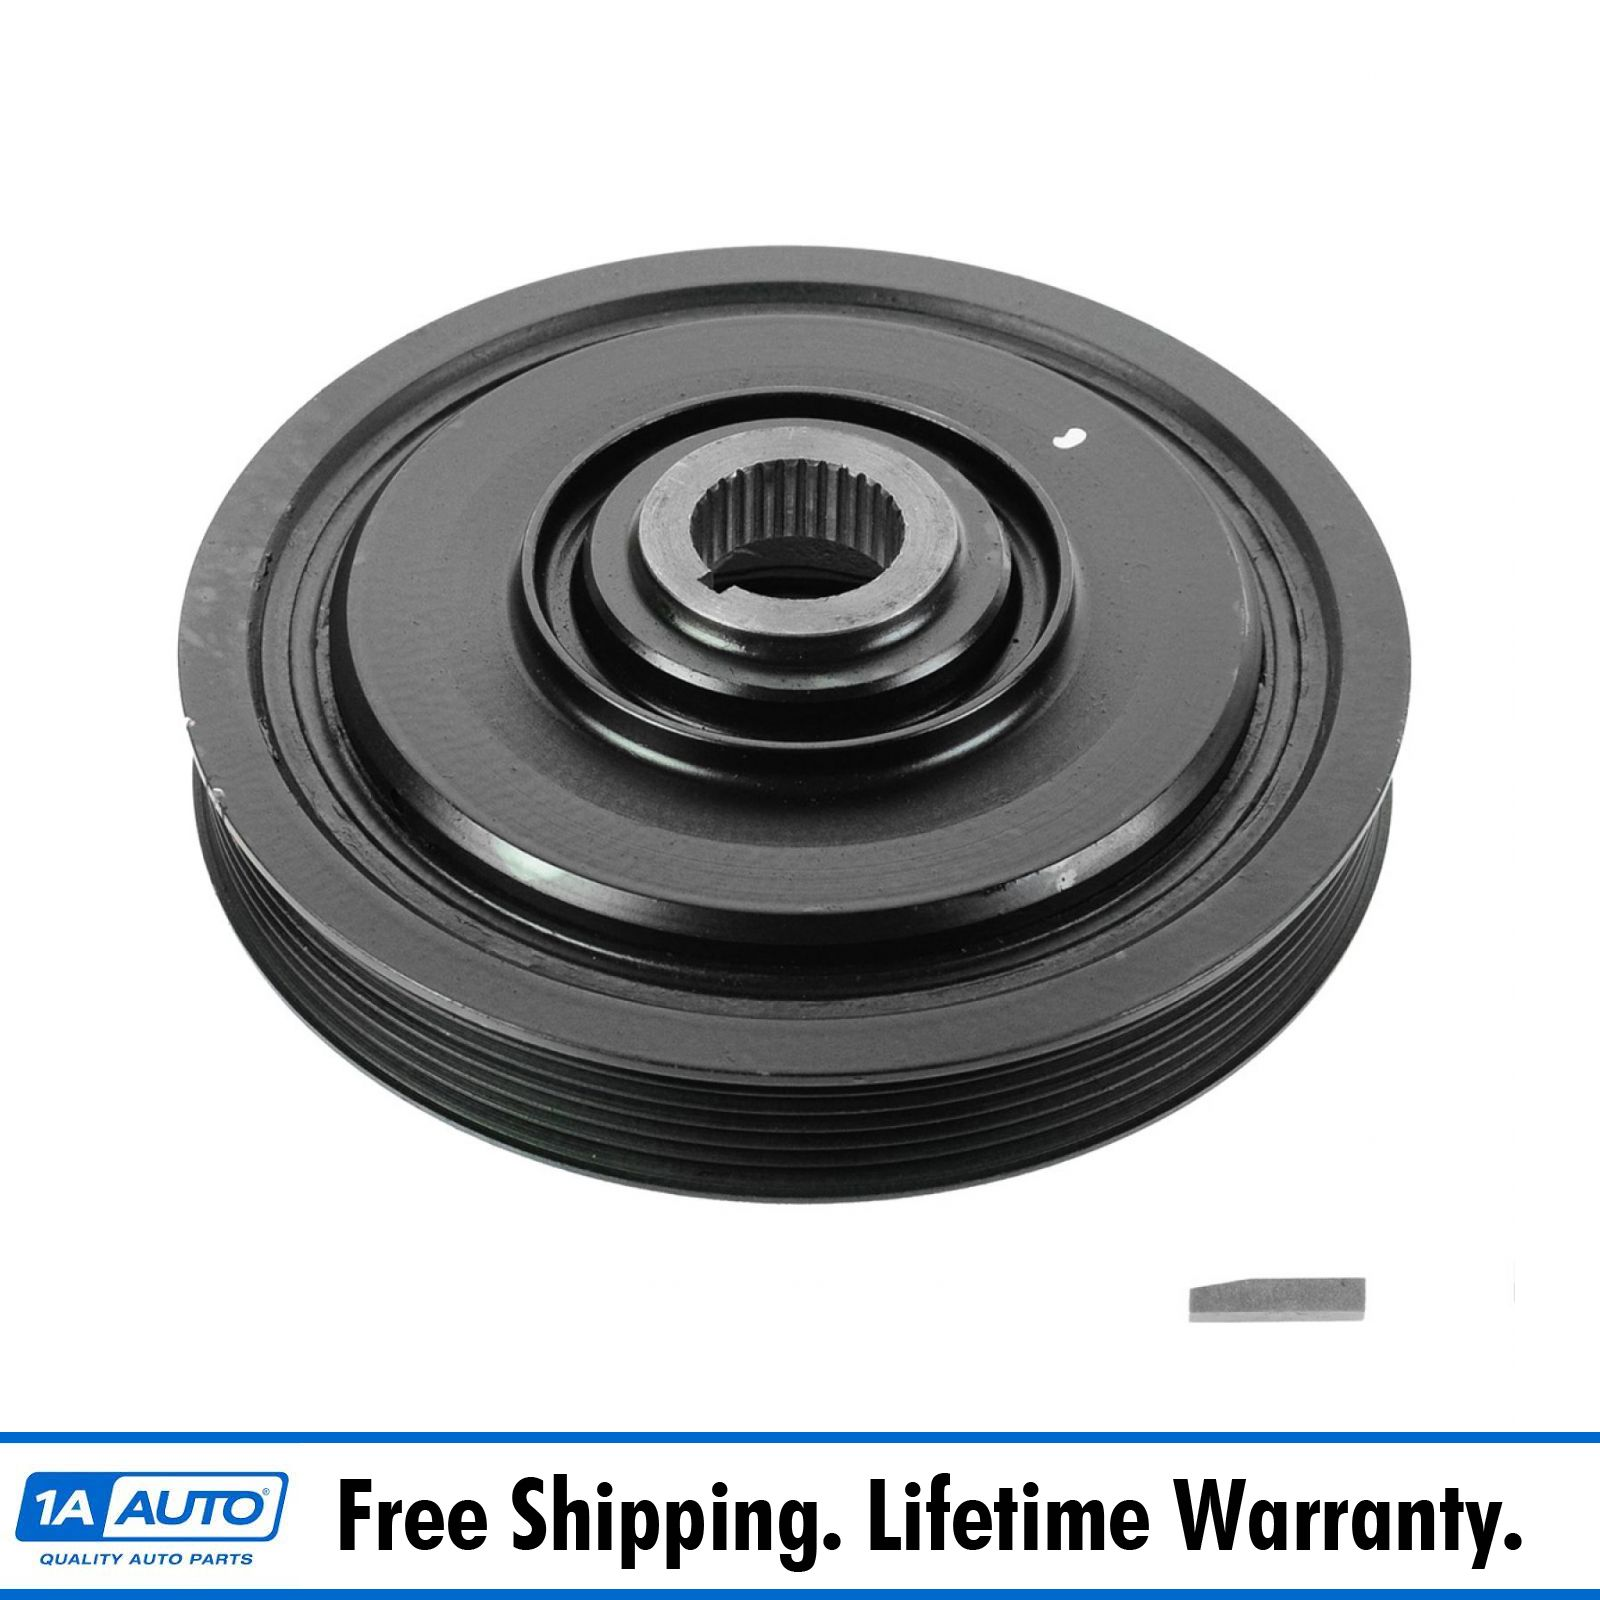 Dorman Harmonic Balancer Dampener Crank Pulley for Honda Acura 3.5L 3.7L